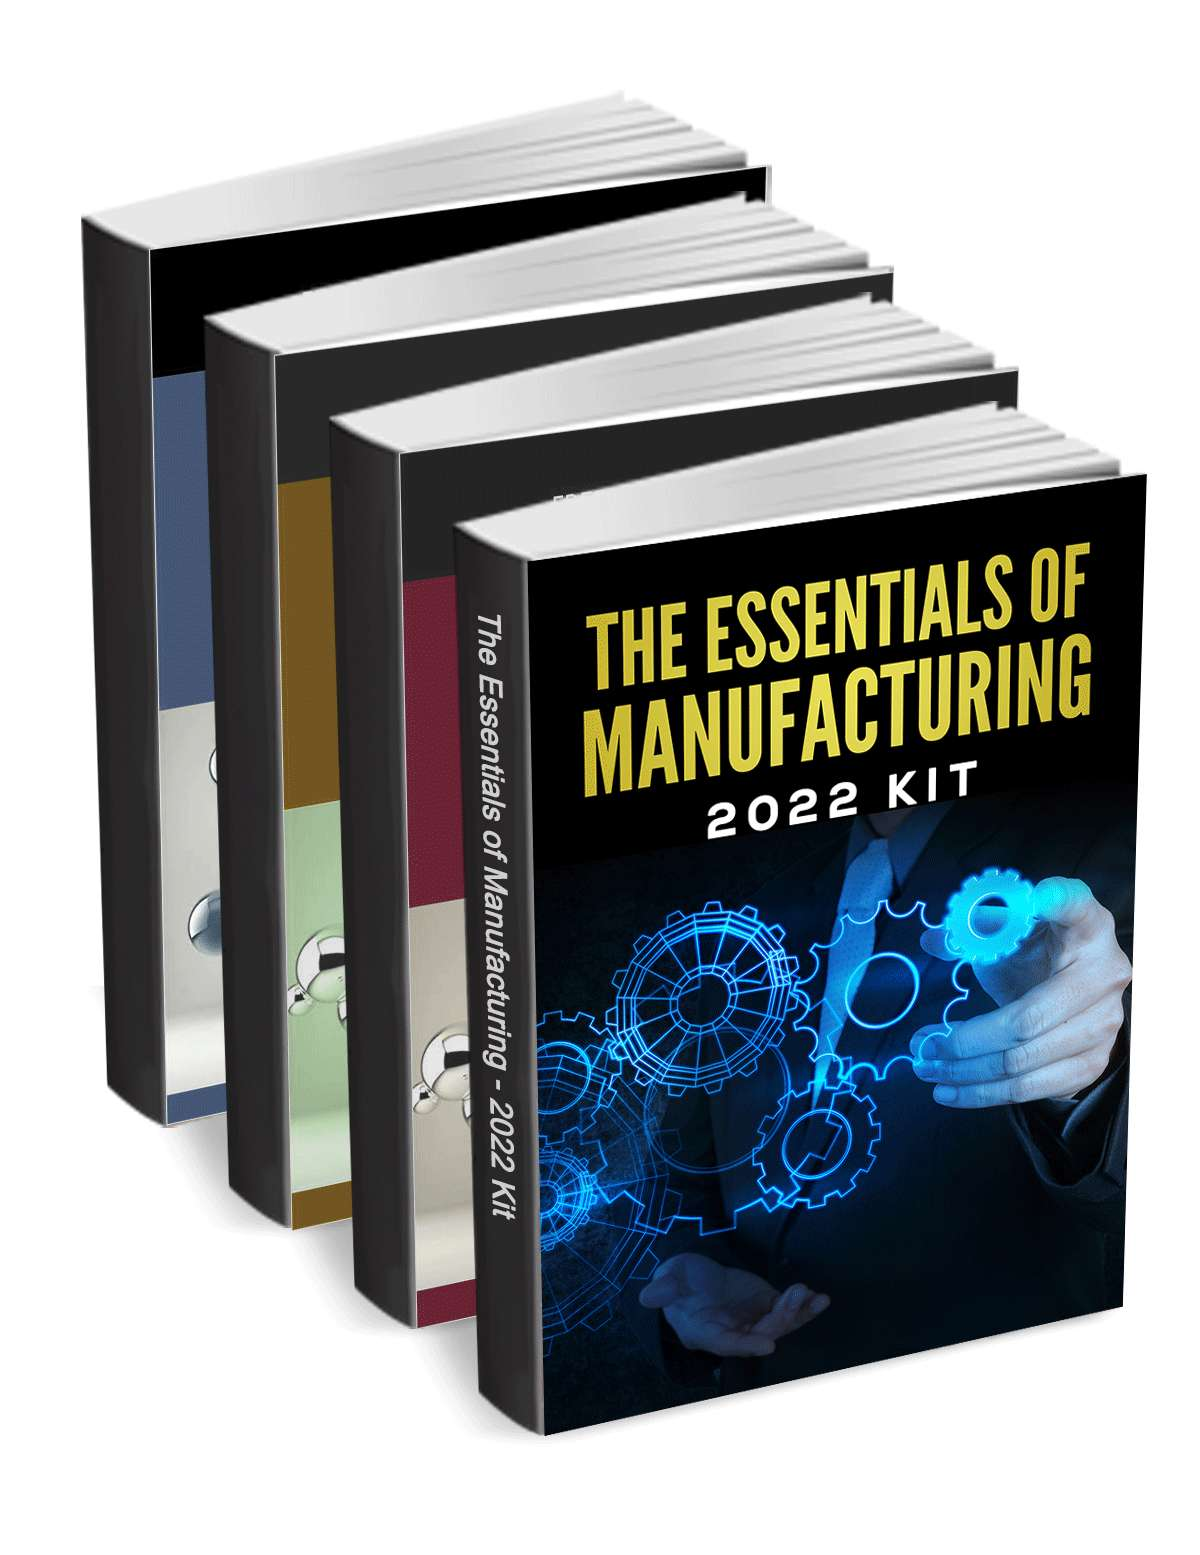 The Essentials of Manufacturing - 2017 Kit